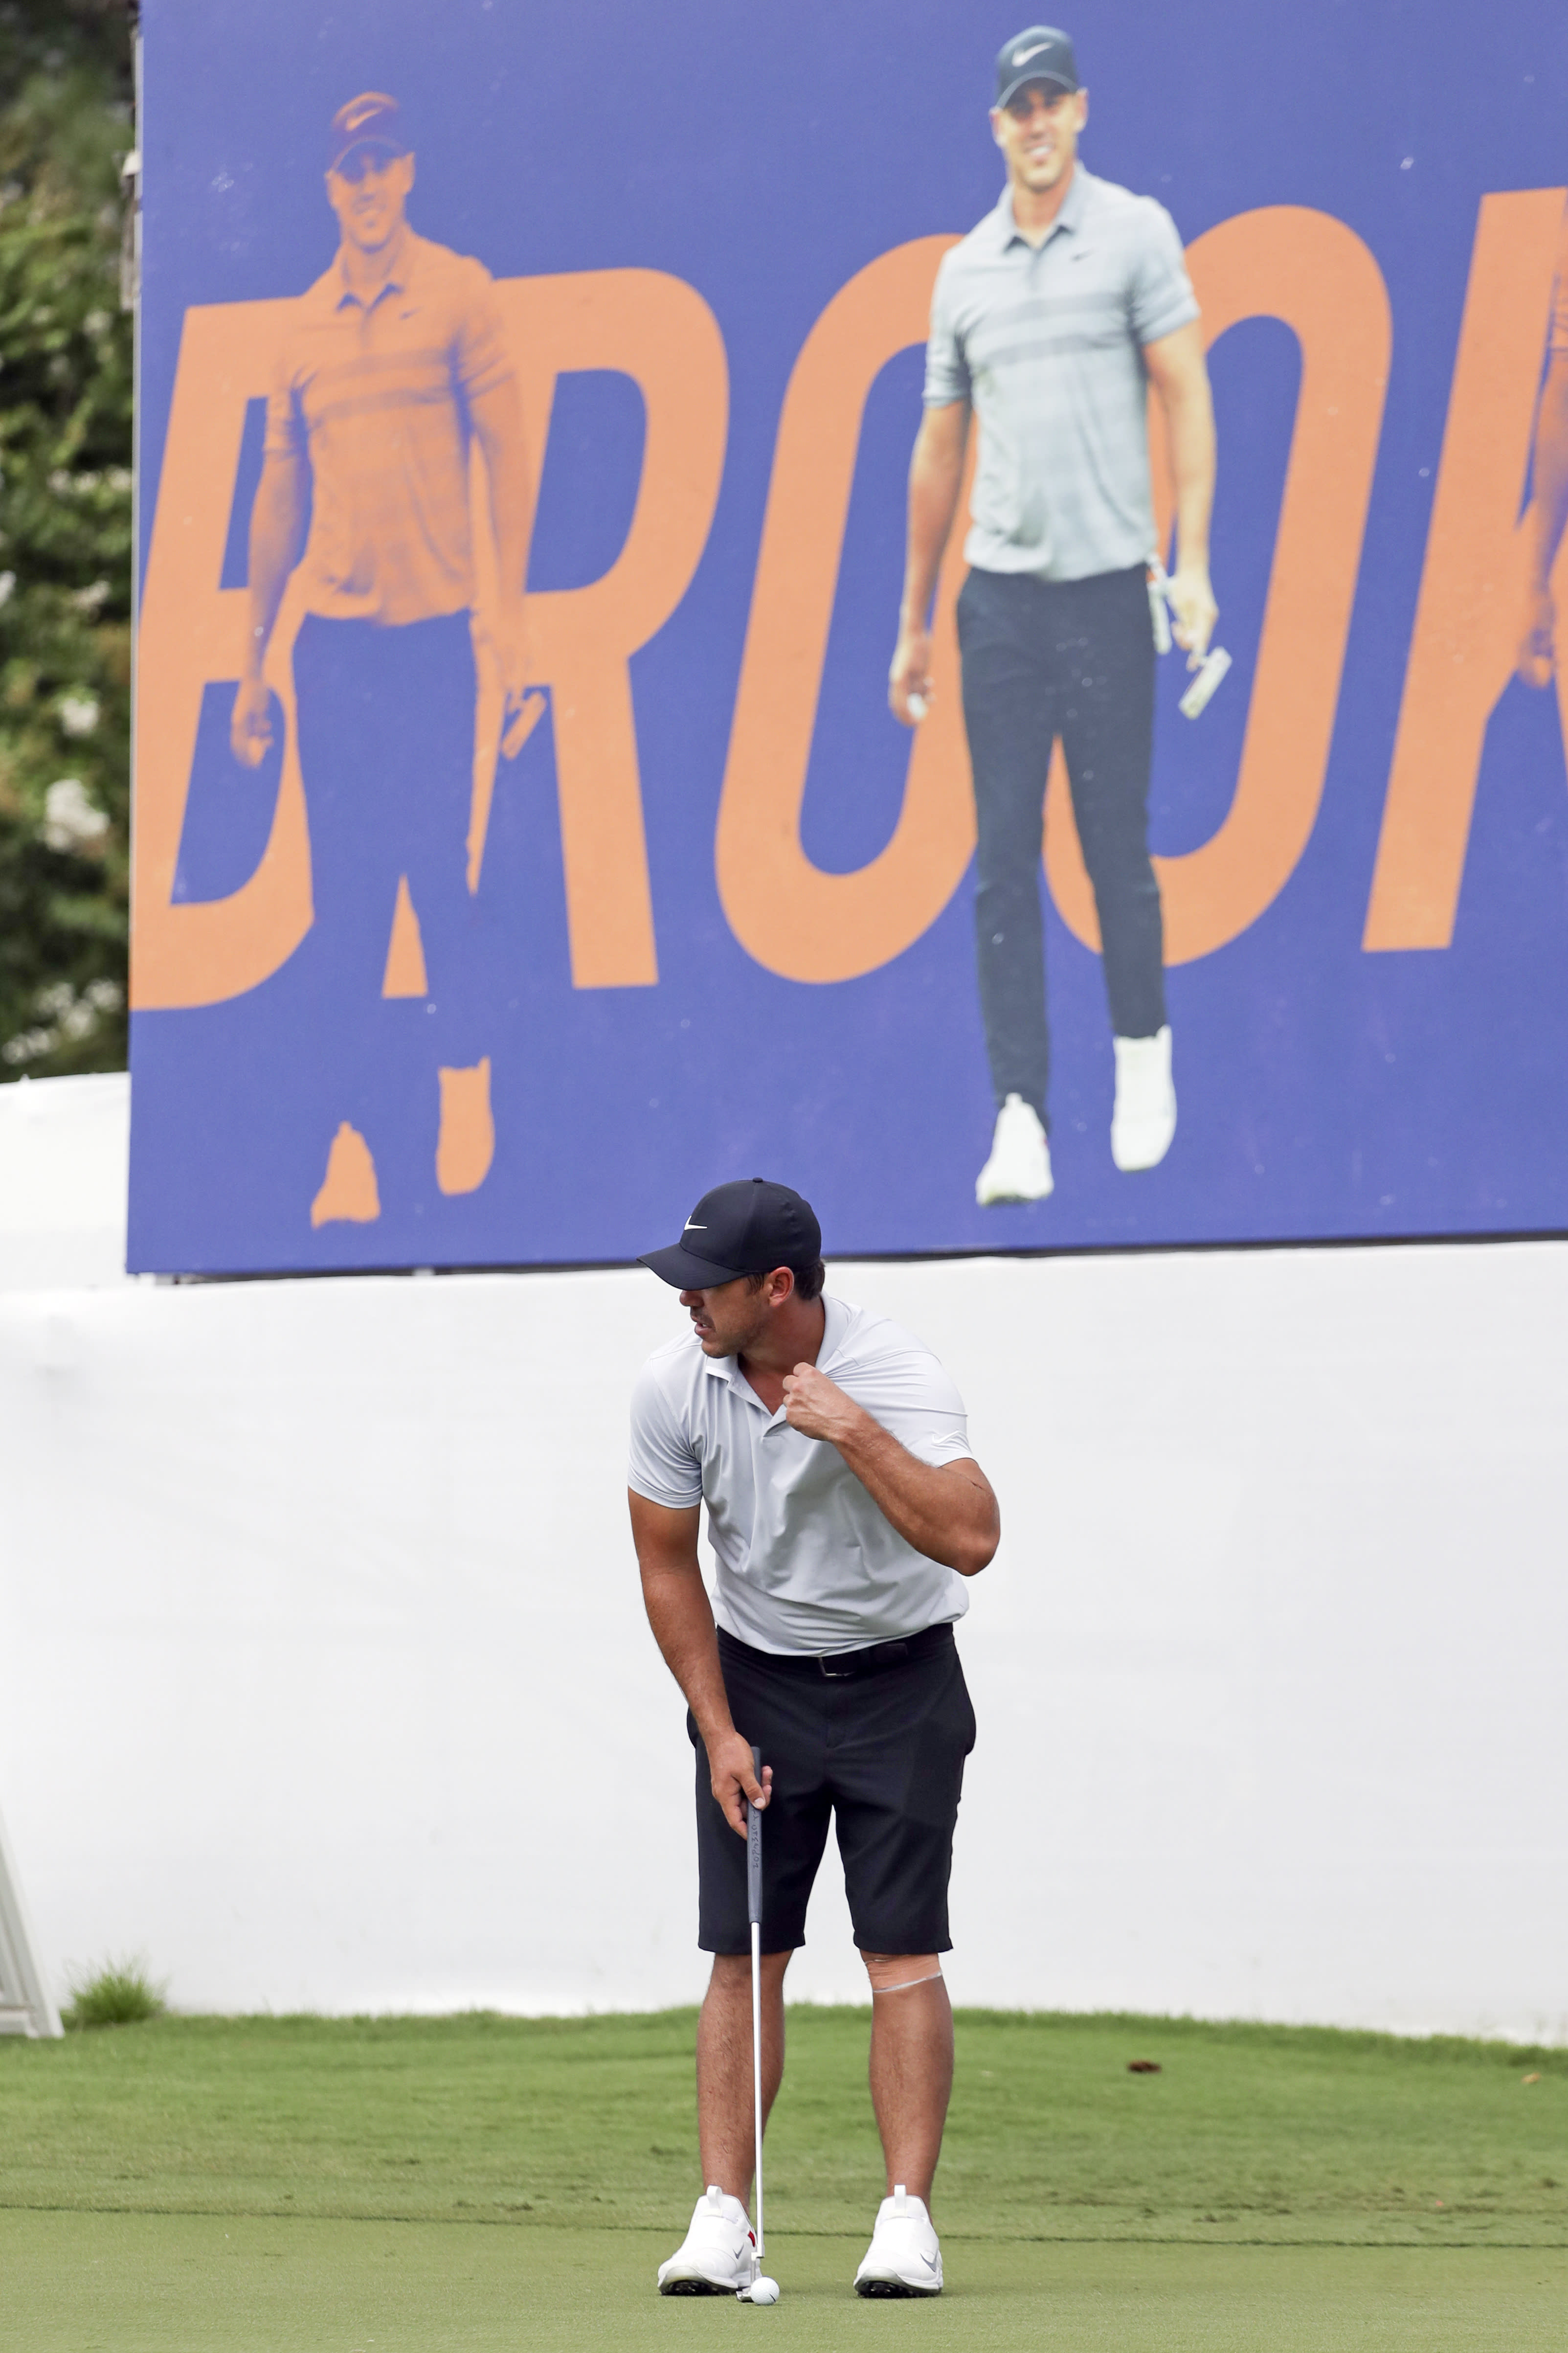 Brooks Koepka putts on the practice green under a banner with his picture at the World Golf Championship-FedEx St. Jude Invitational Wednesday, July 29, 2020, in Memphis, Tenn. Koepka, who won three times last year is trying to defend his FedEx St. Jude Invitational title with an injured left knee that has had him putting more weight on his right leg and affecting his game. (AP Photo/Mark Humphrey)